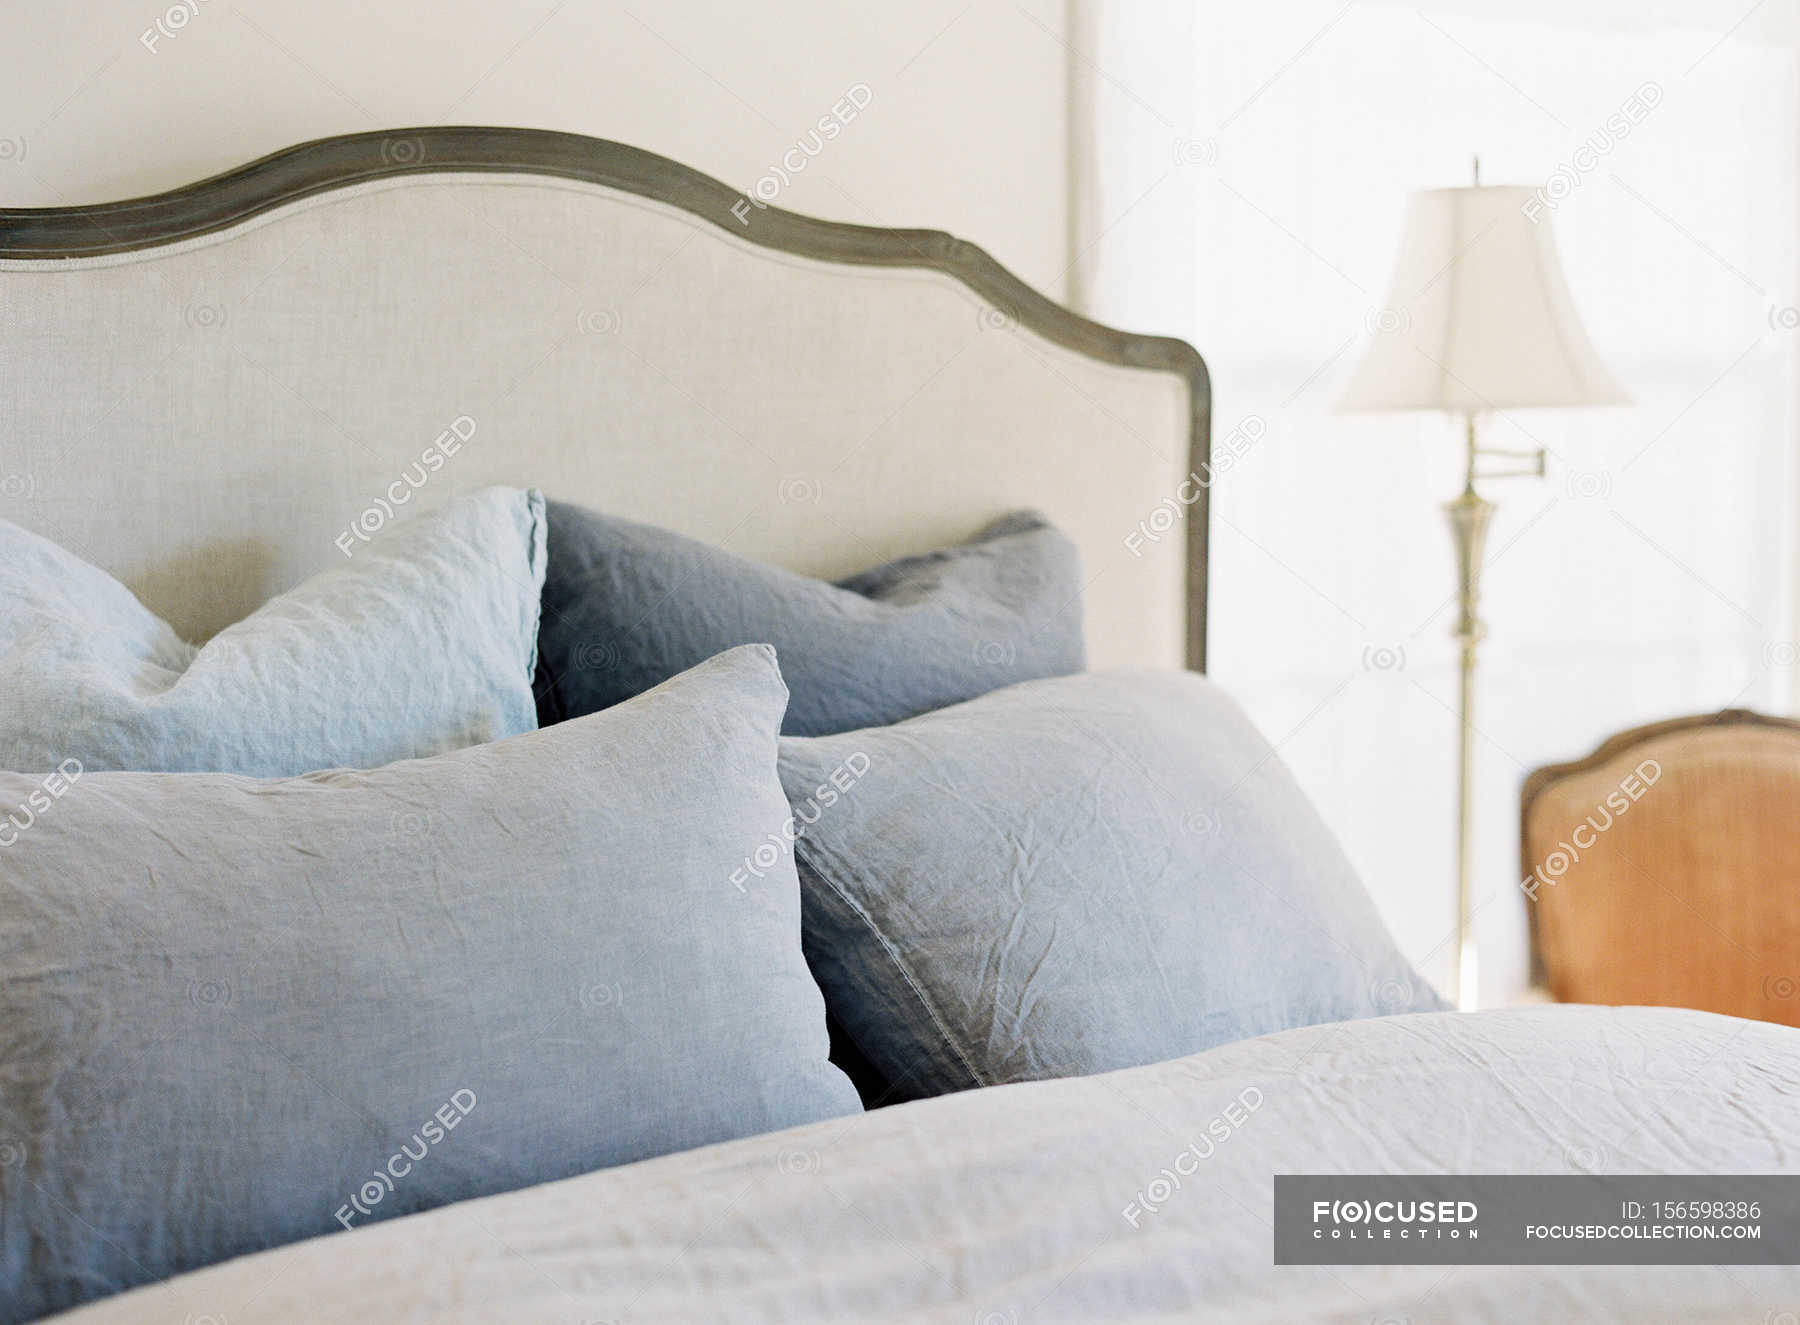 Big Bed With Pillows Freshness Comfort Stock Photo 156598386